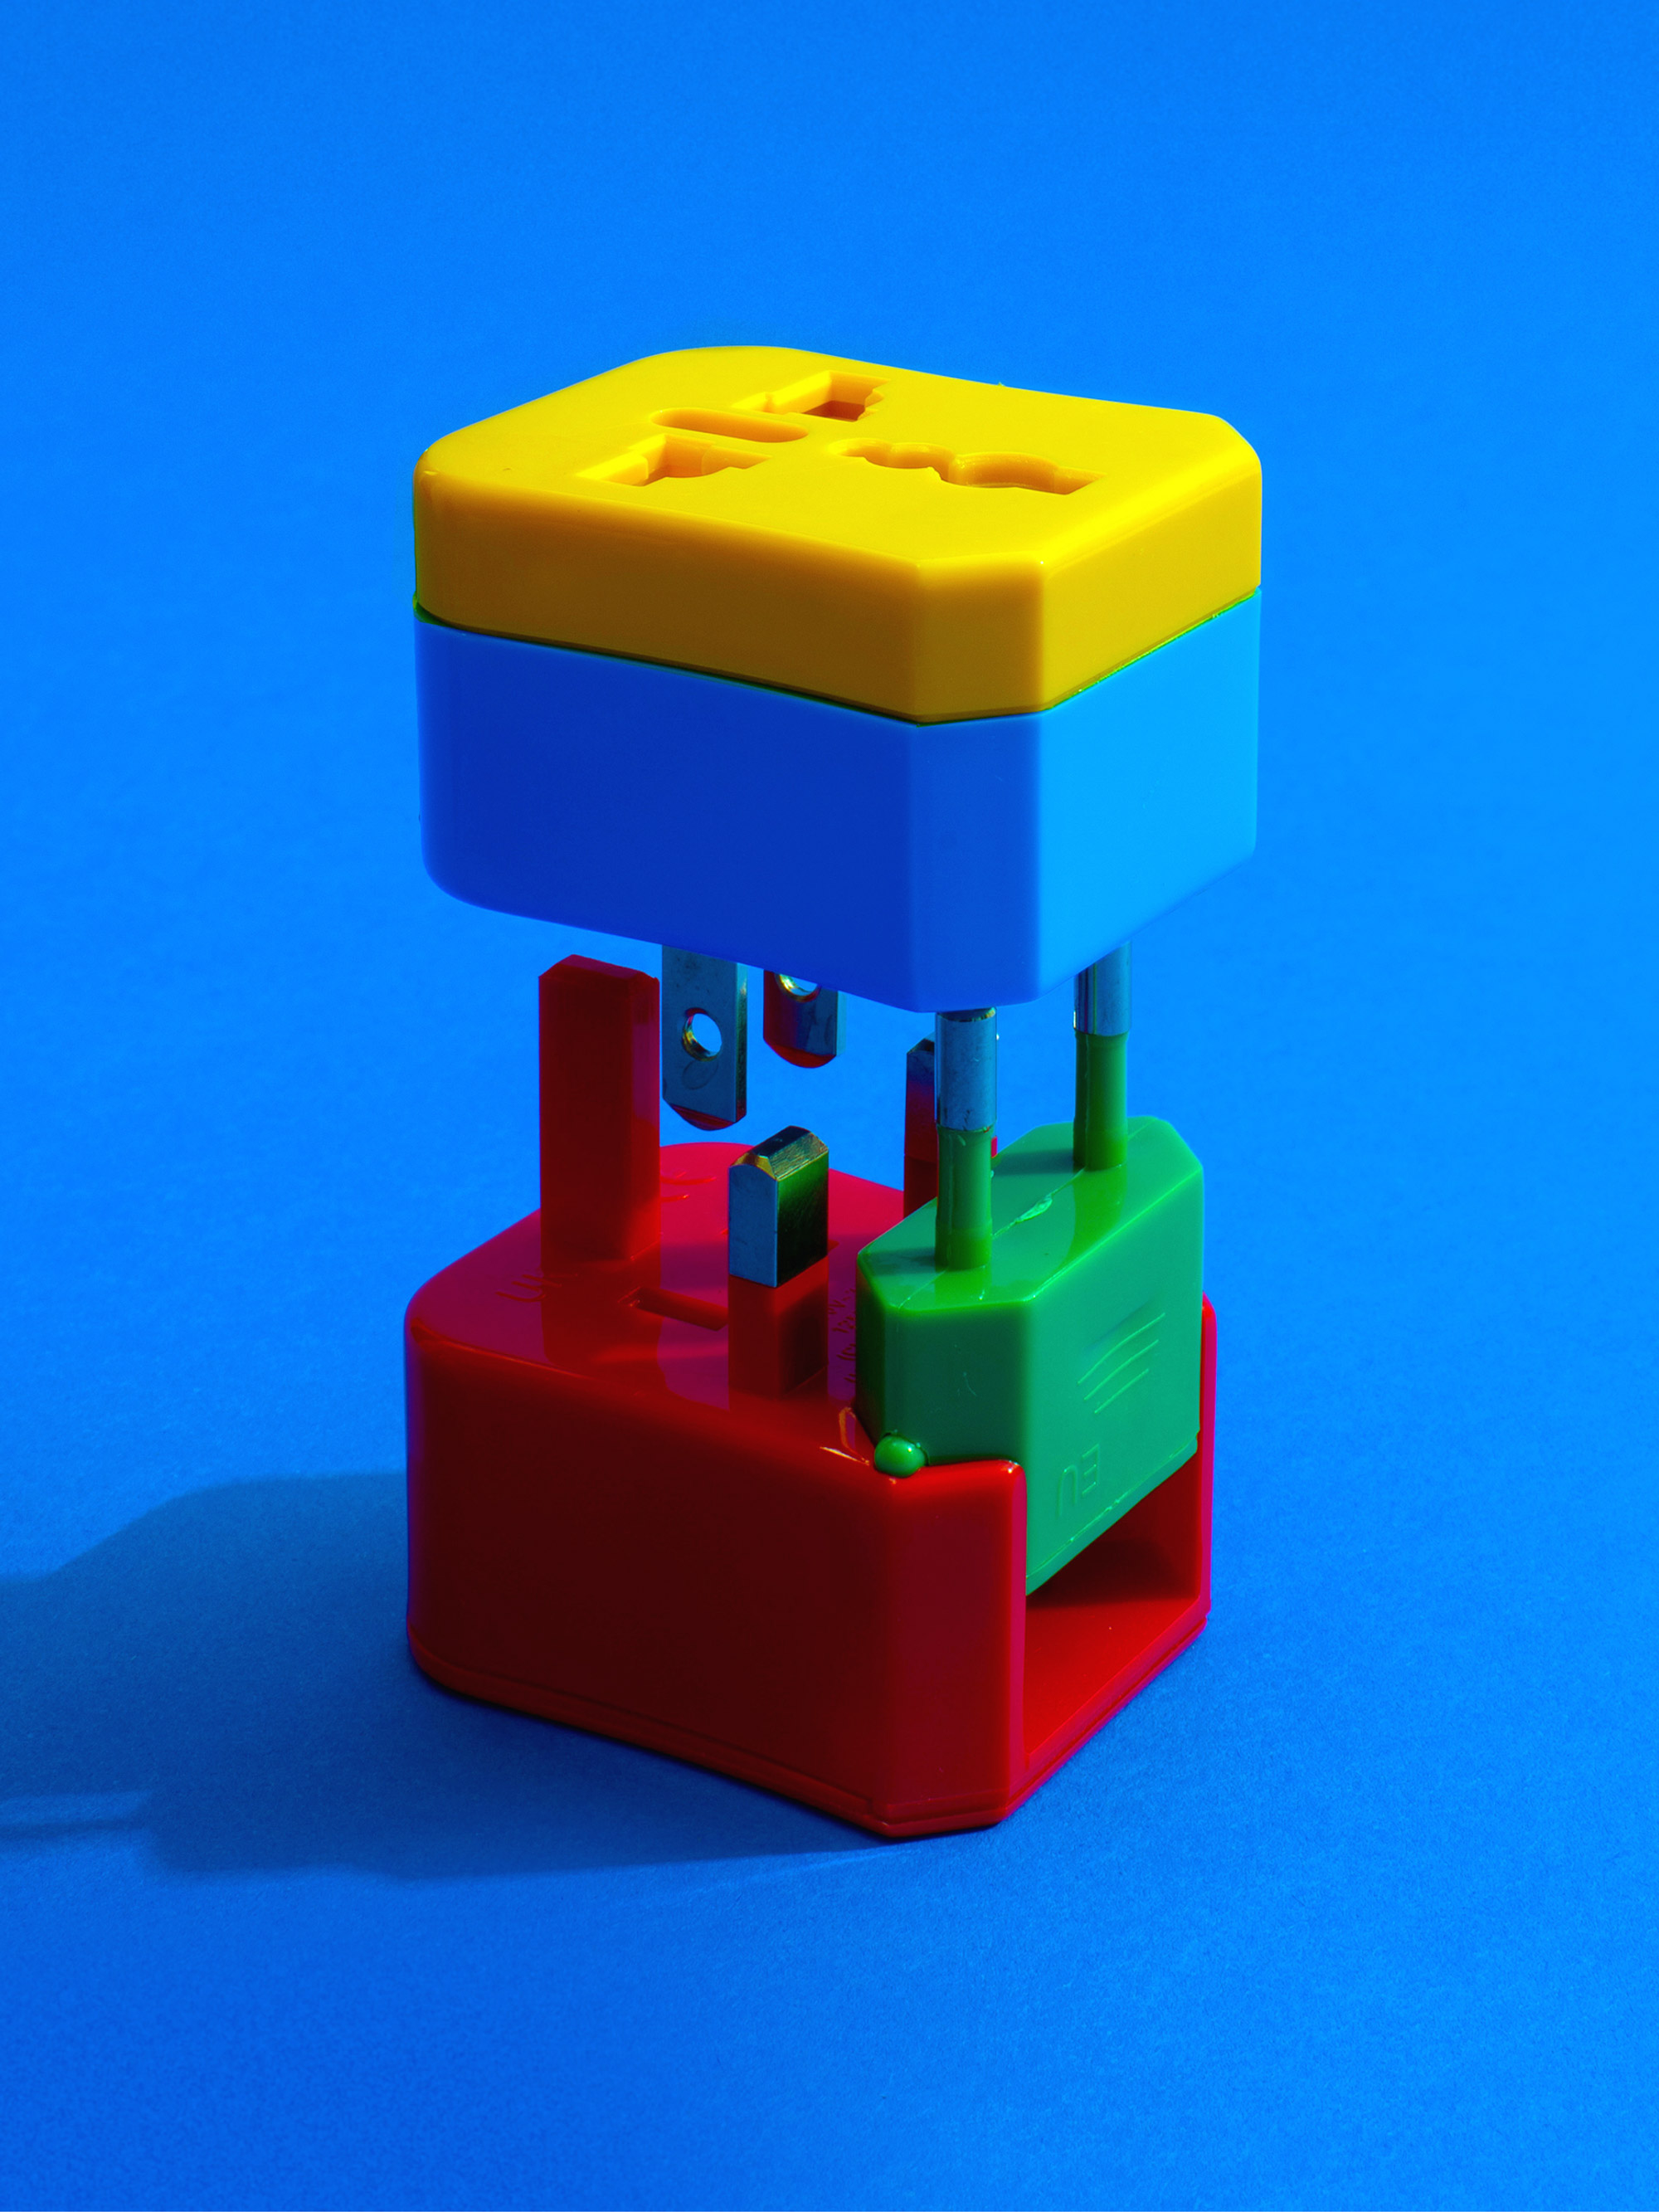 Color-coded 4-in-1 adapter by Flight 001